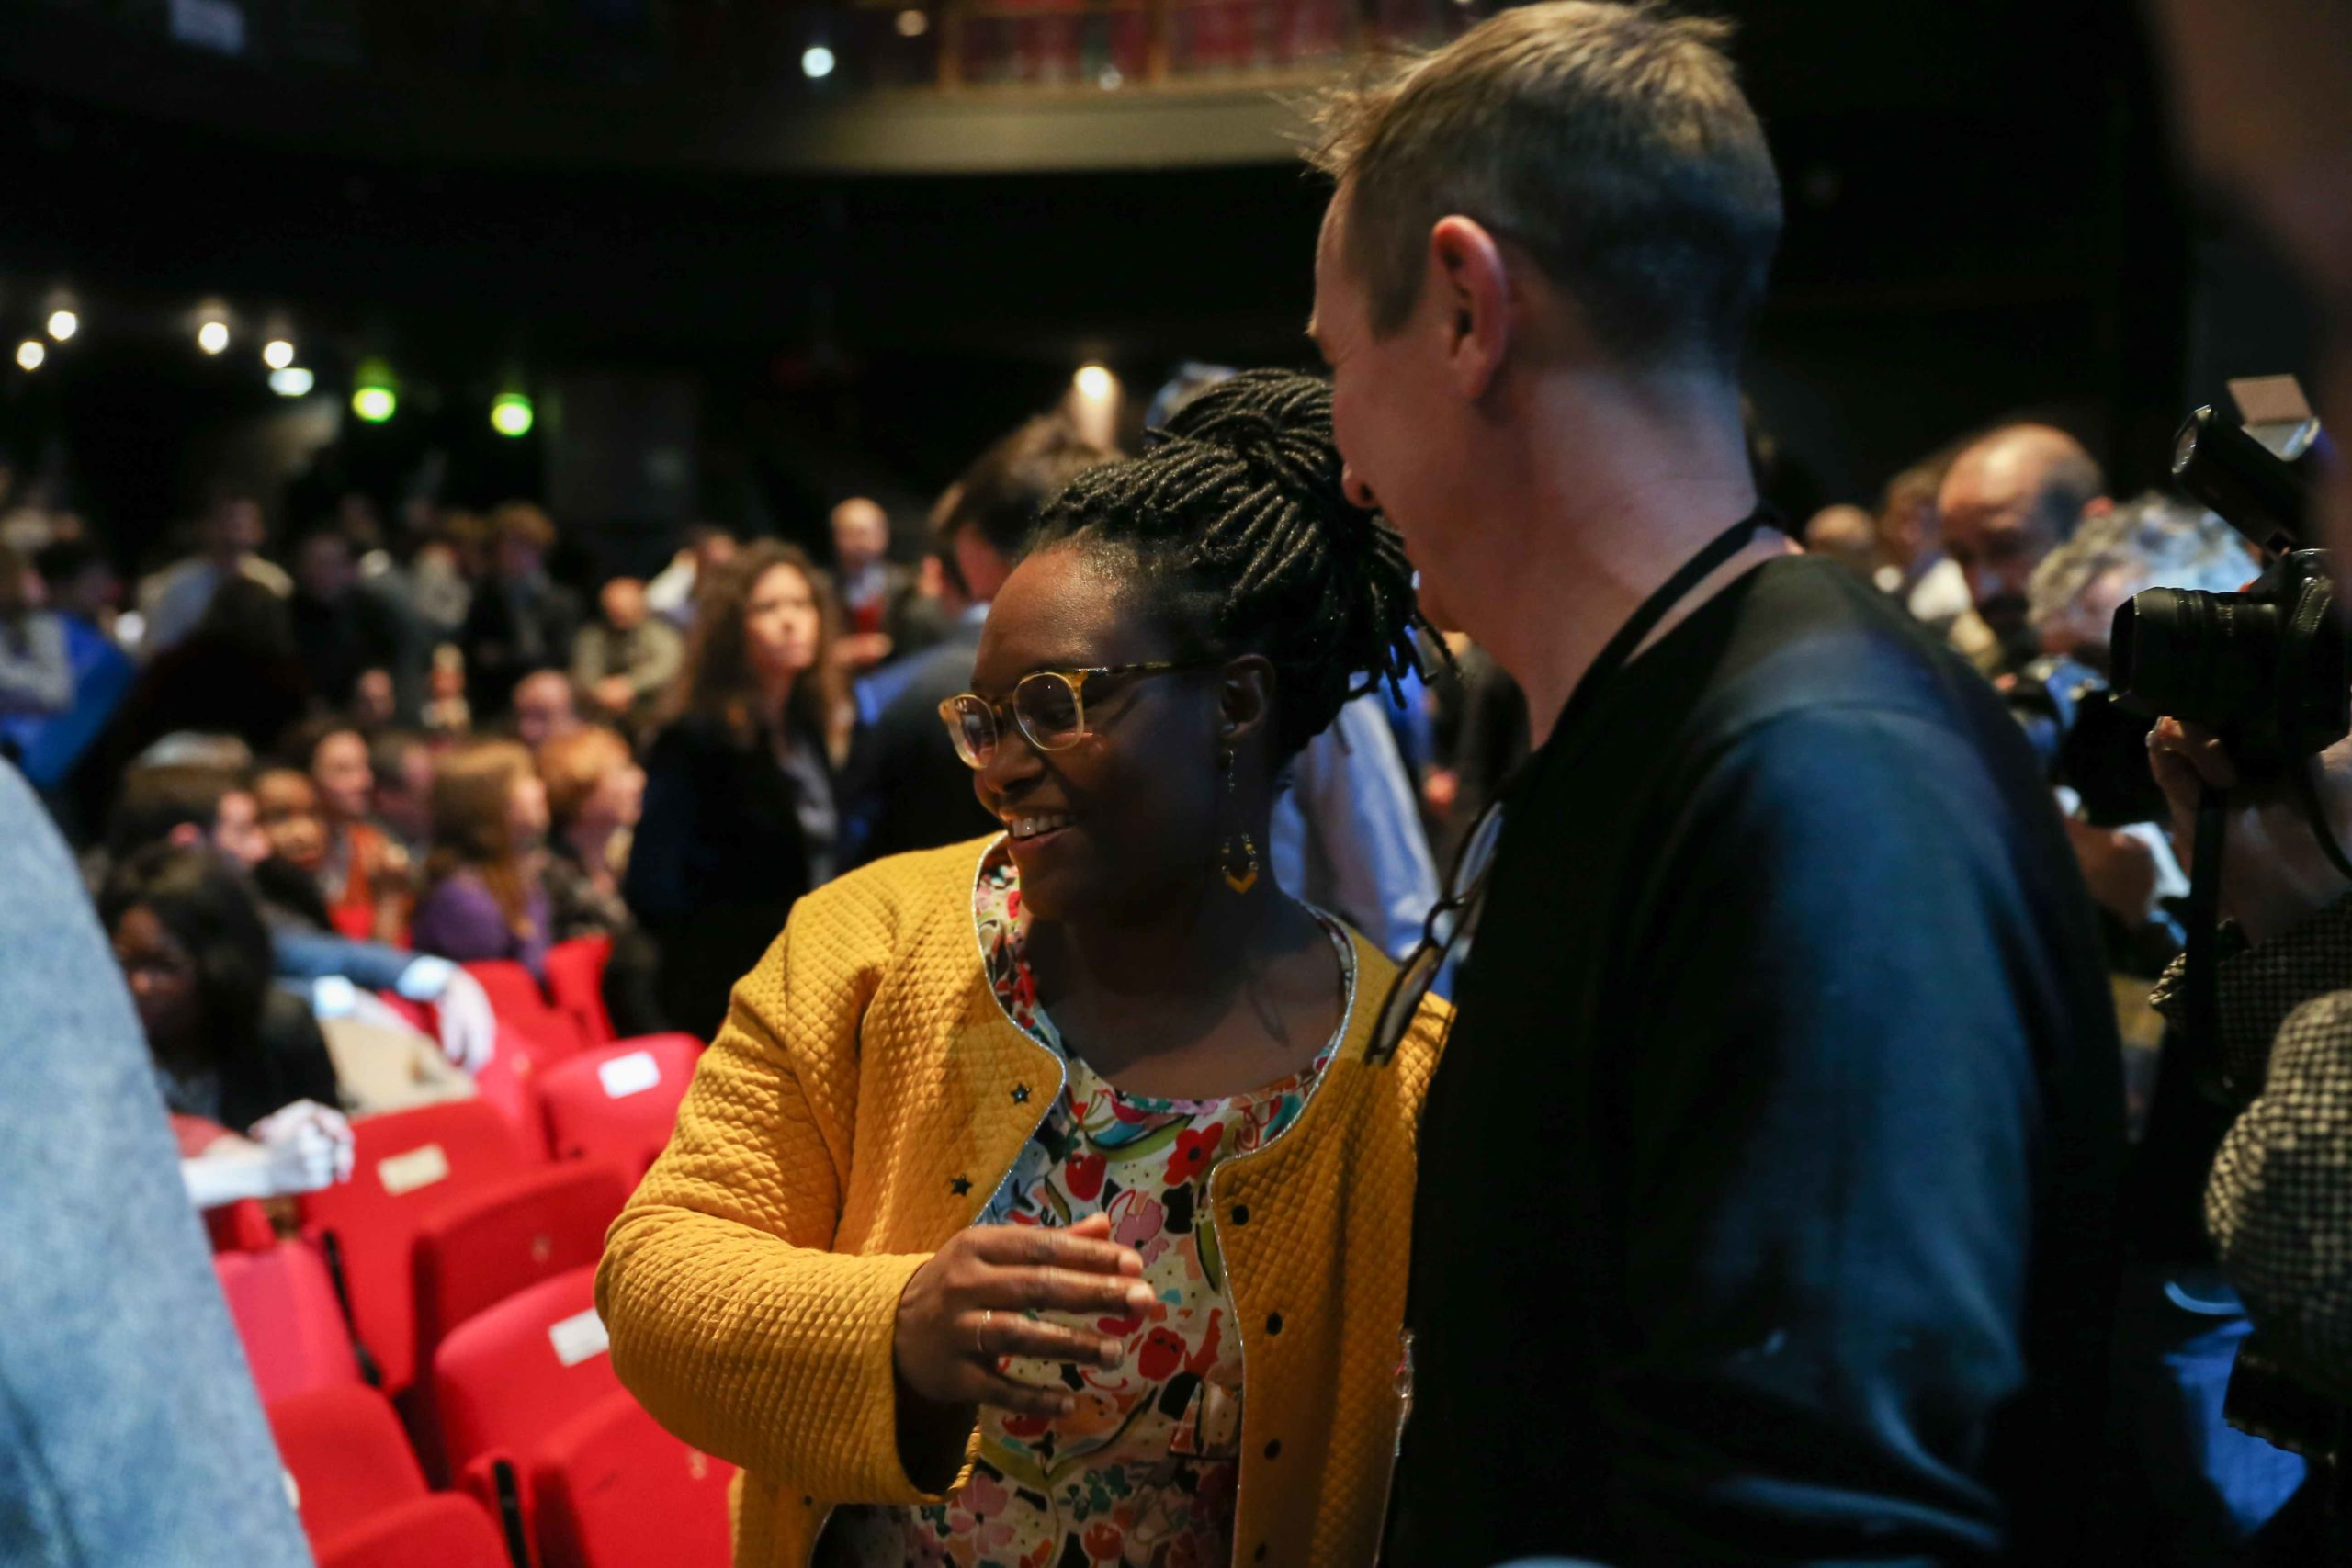 French Junior Minister and Government's spokesperson Sibeth NDiaye (C) takes part in the Benjamin Griveaux meeting, at the Bobino theater in Paris, on January 27, 2020. Benjamin Griveaux is the official La Republique en Marche (LREM) candidate for the Pari